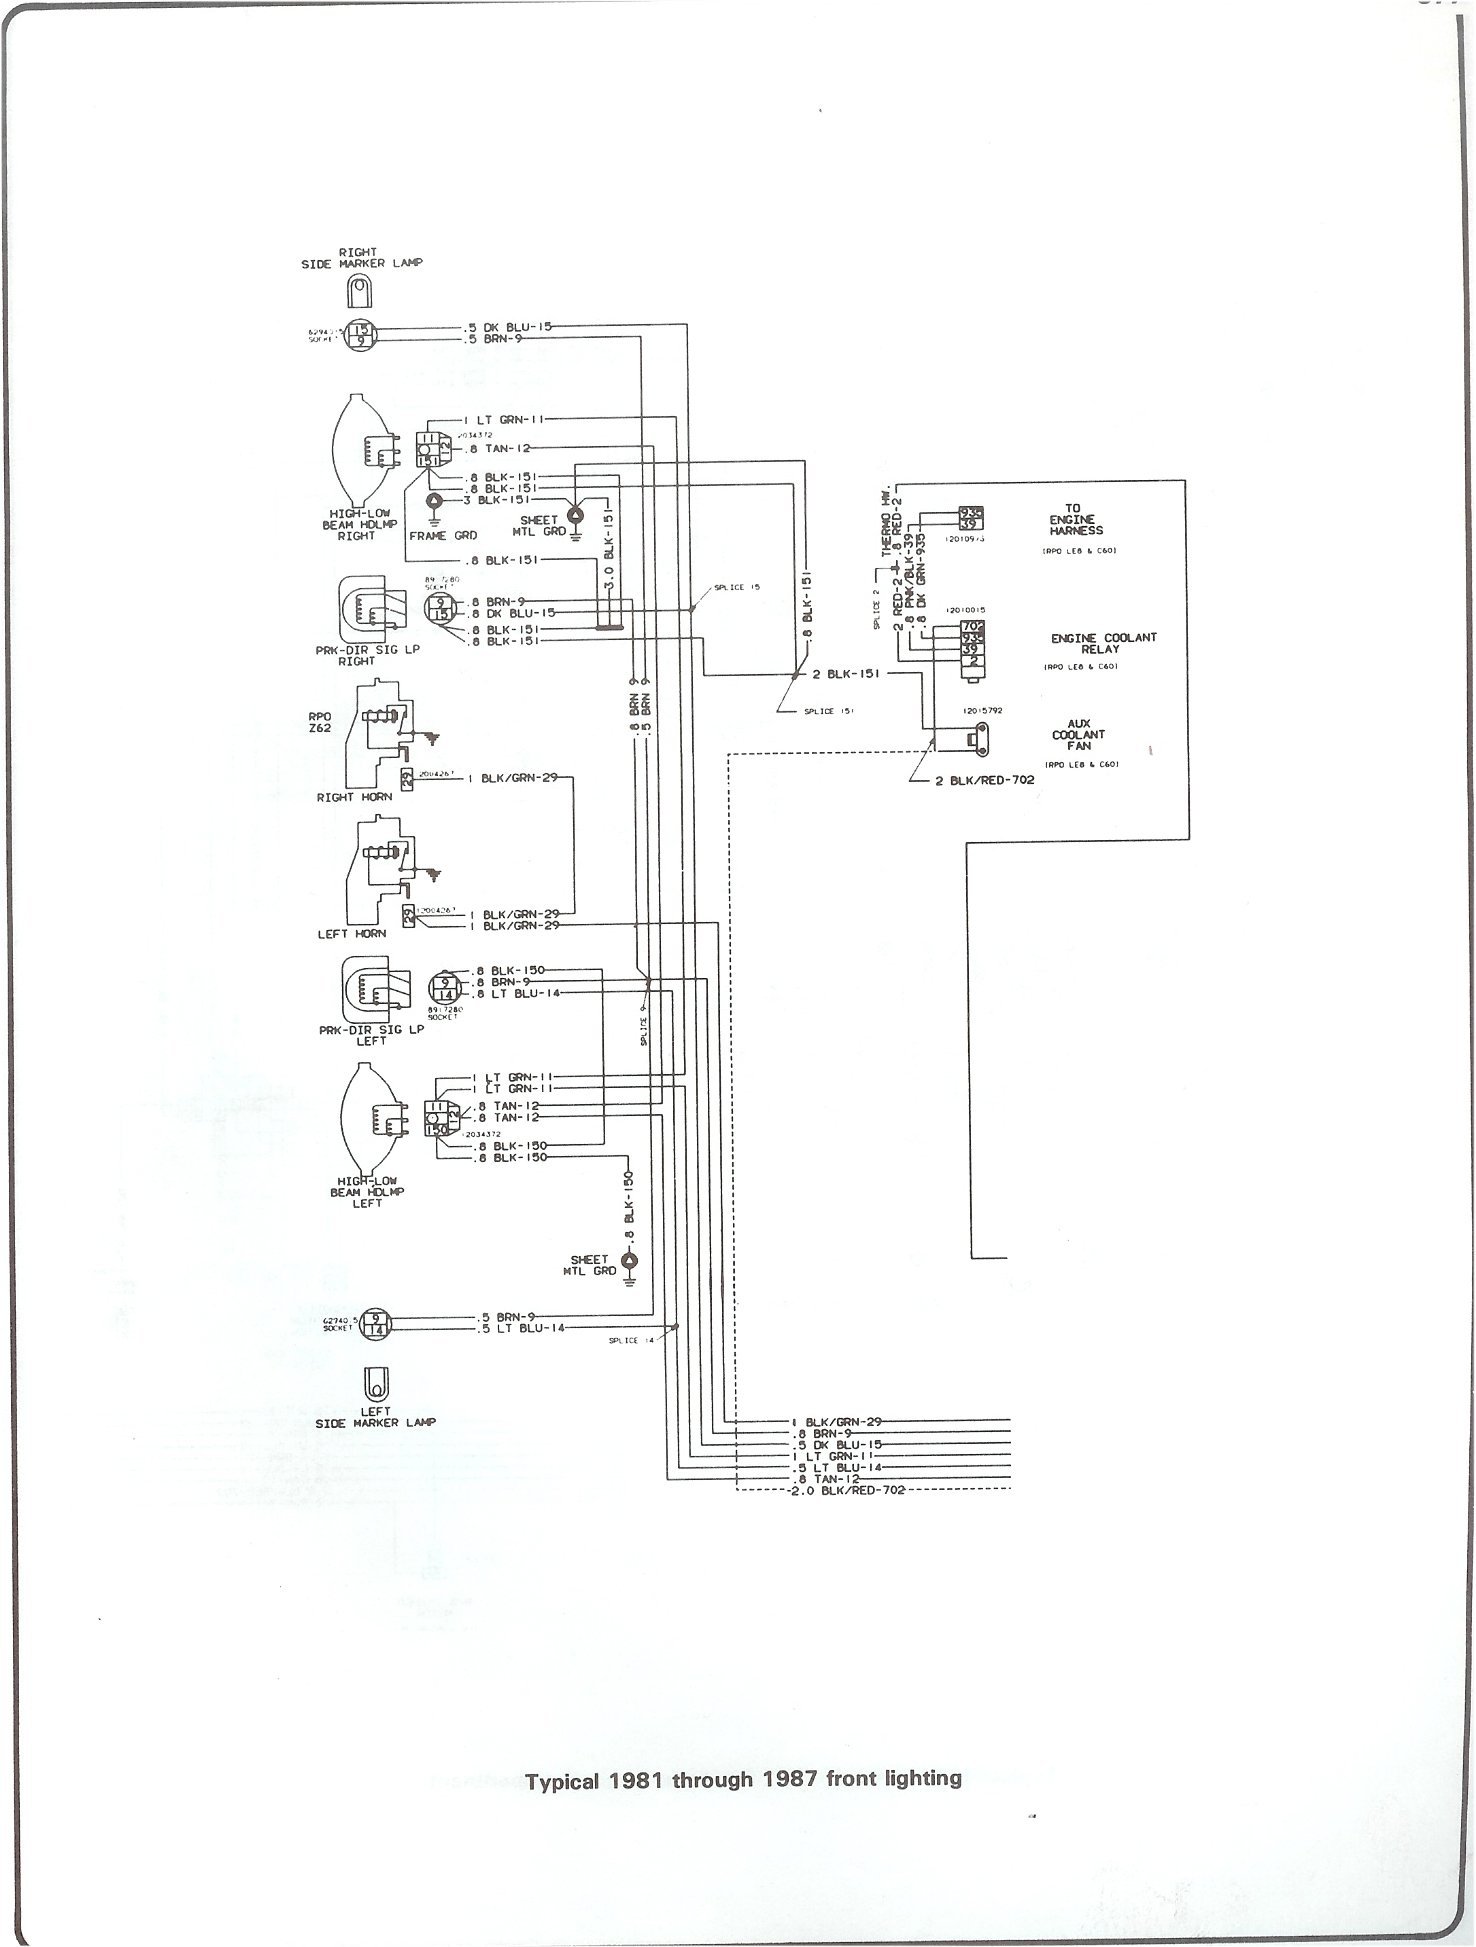 Brake Light Switch Wiring Diagram? - Blazer Forum - Chevy Blazer Forums - Brake Light Wiring Diagram